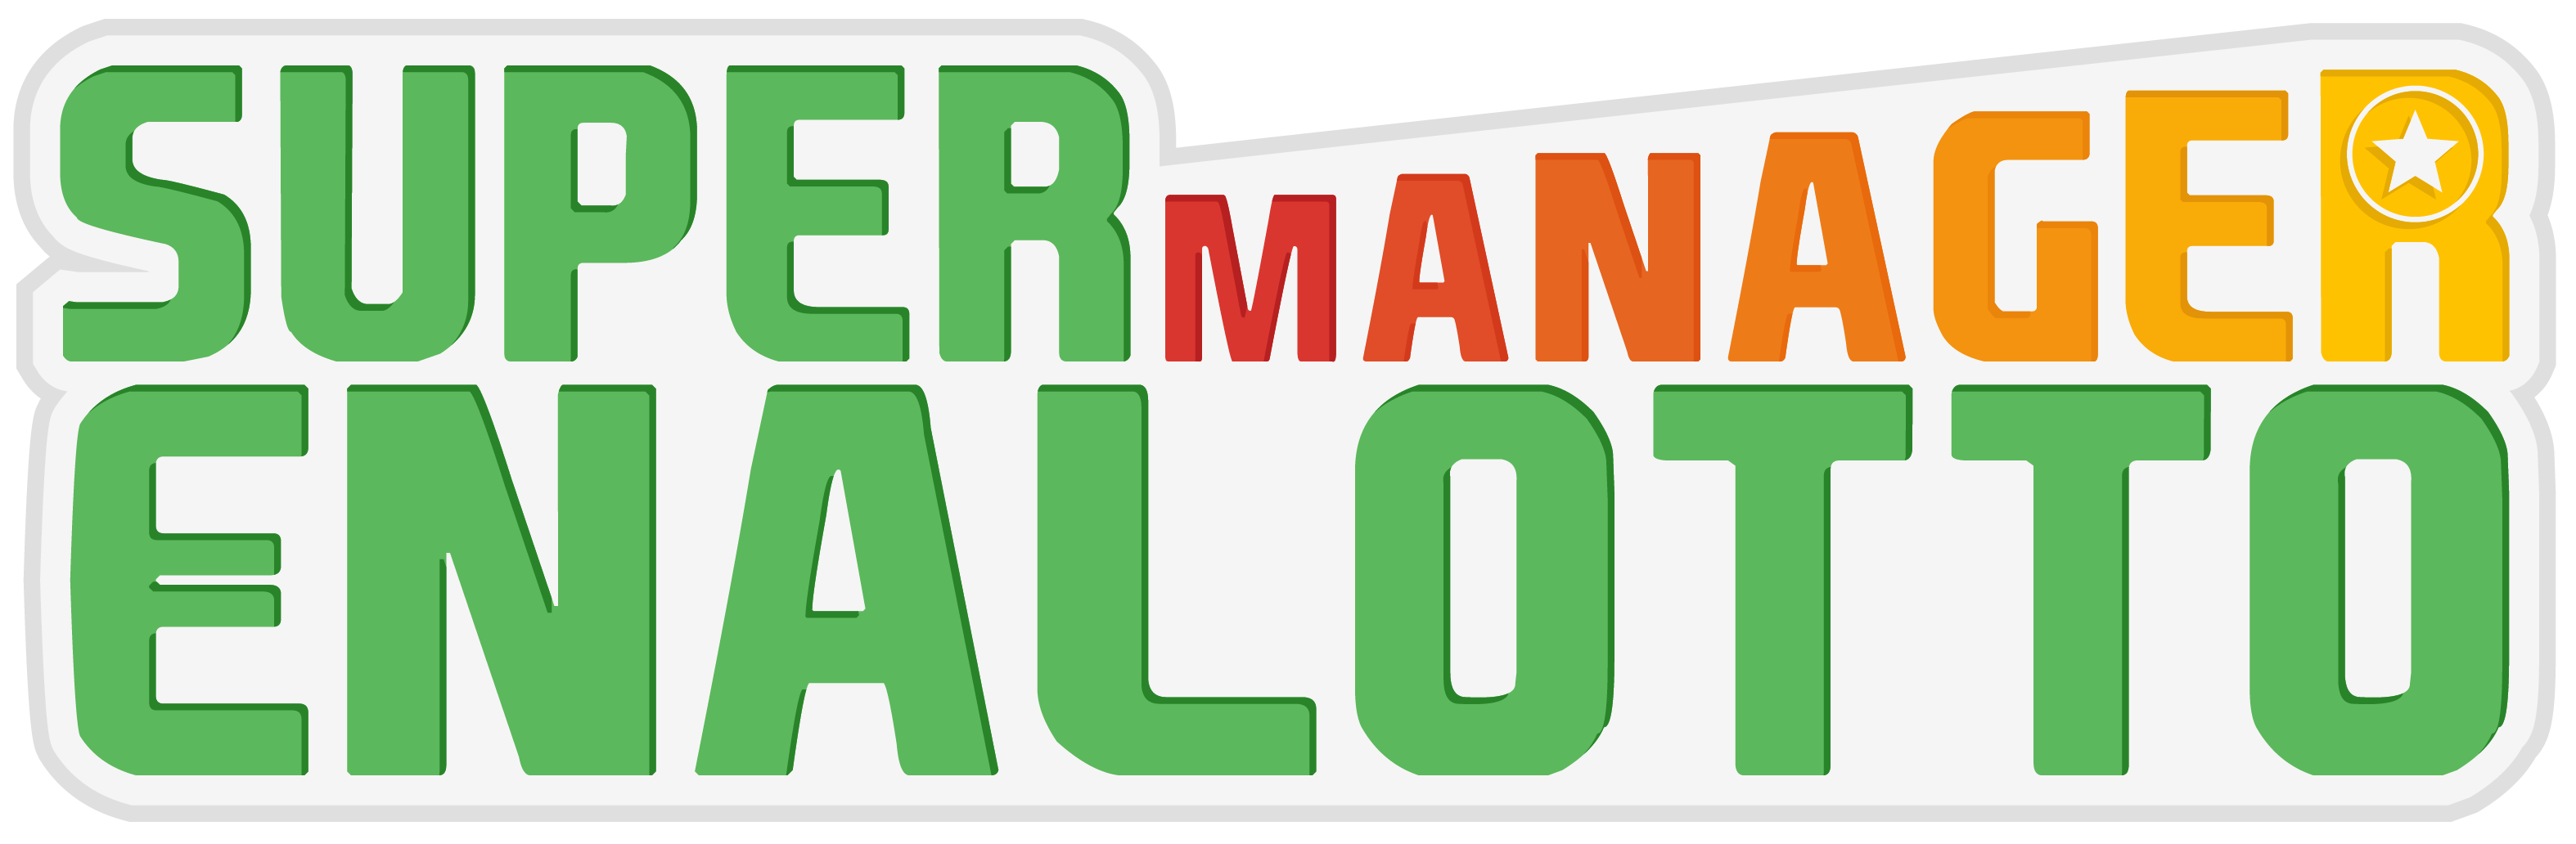 Superenalotto Manager logo